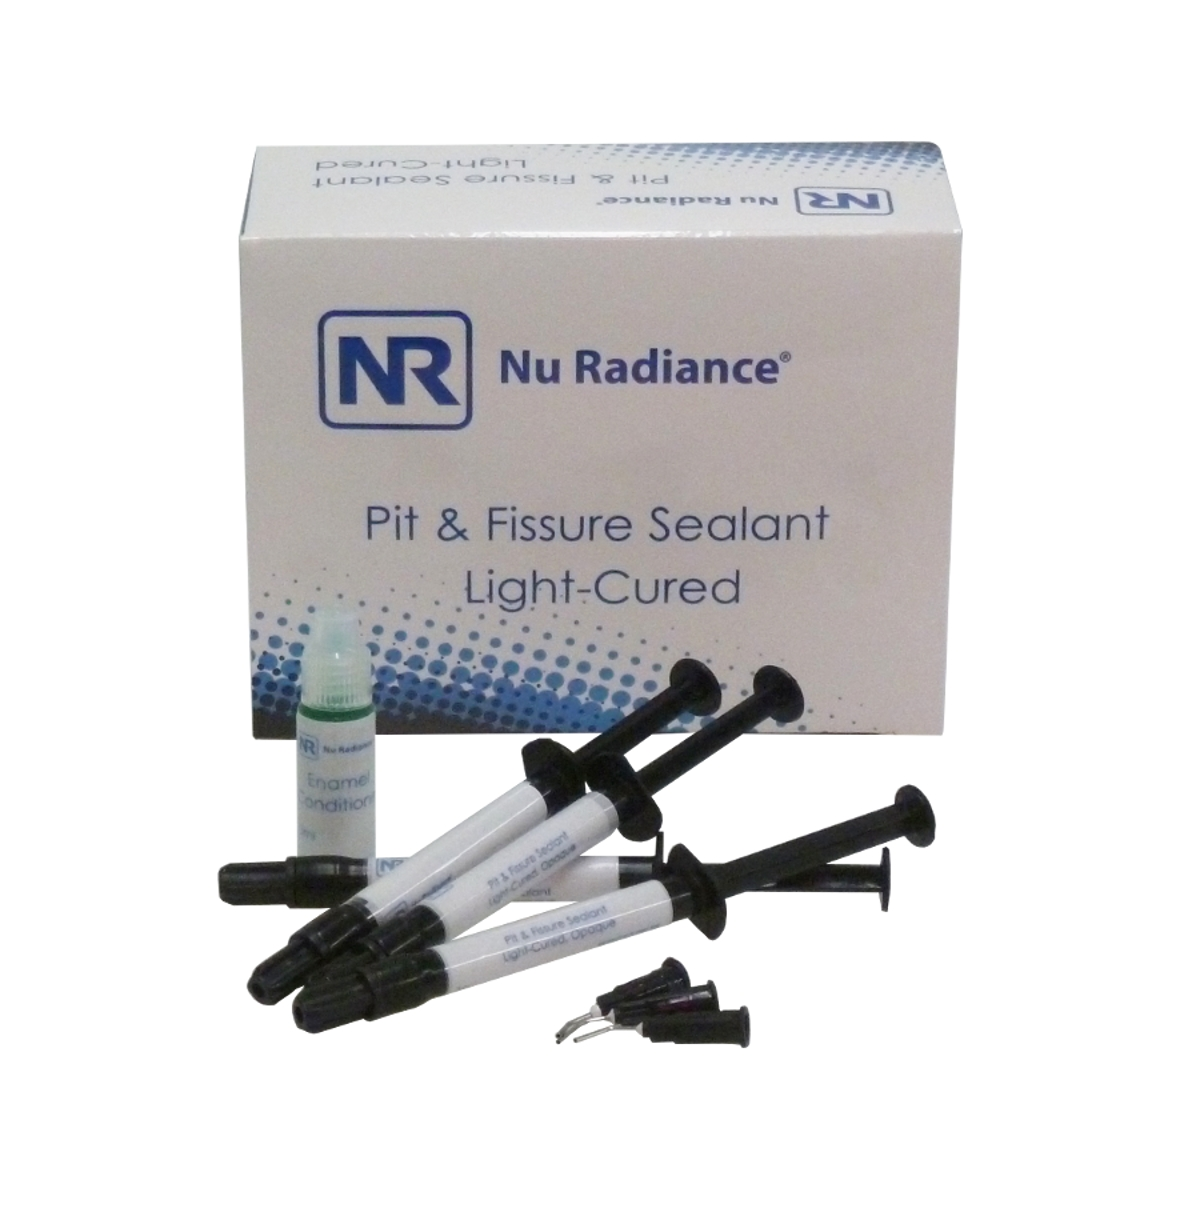 Nu Radiance Pit & Fissure Sealant, Light-Cured